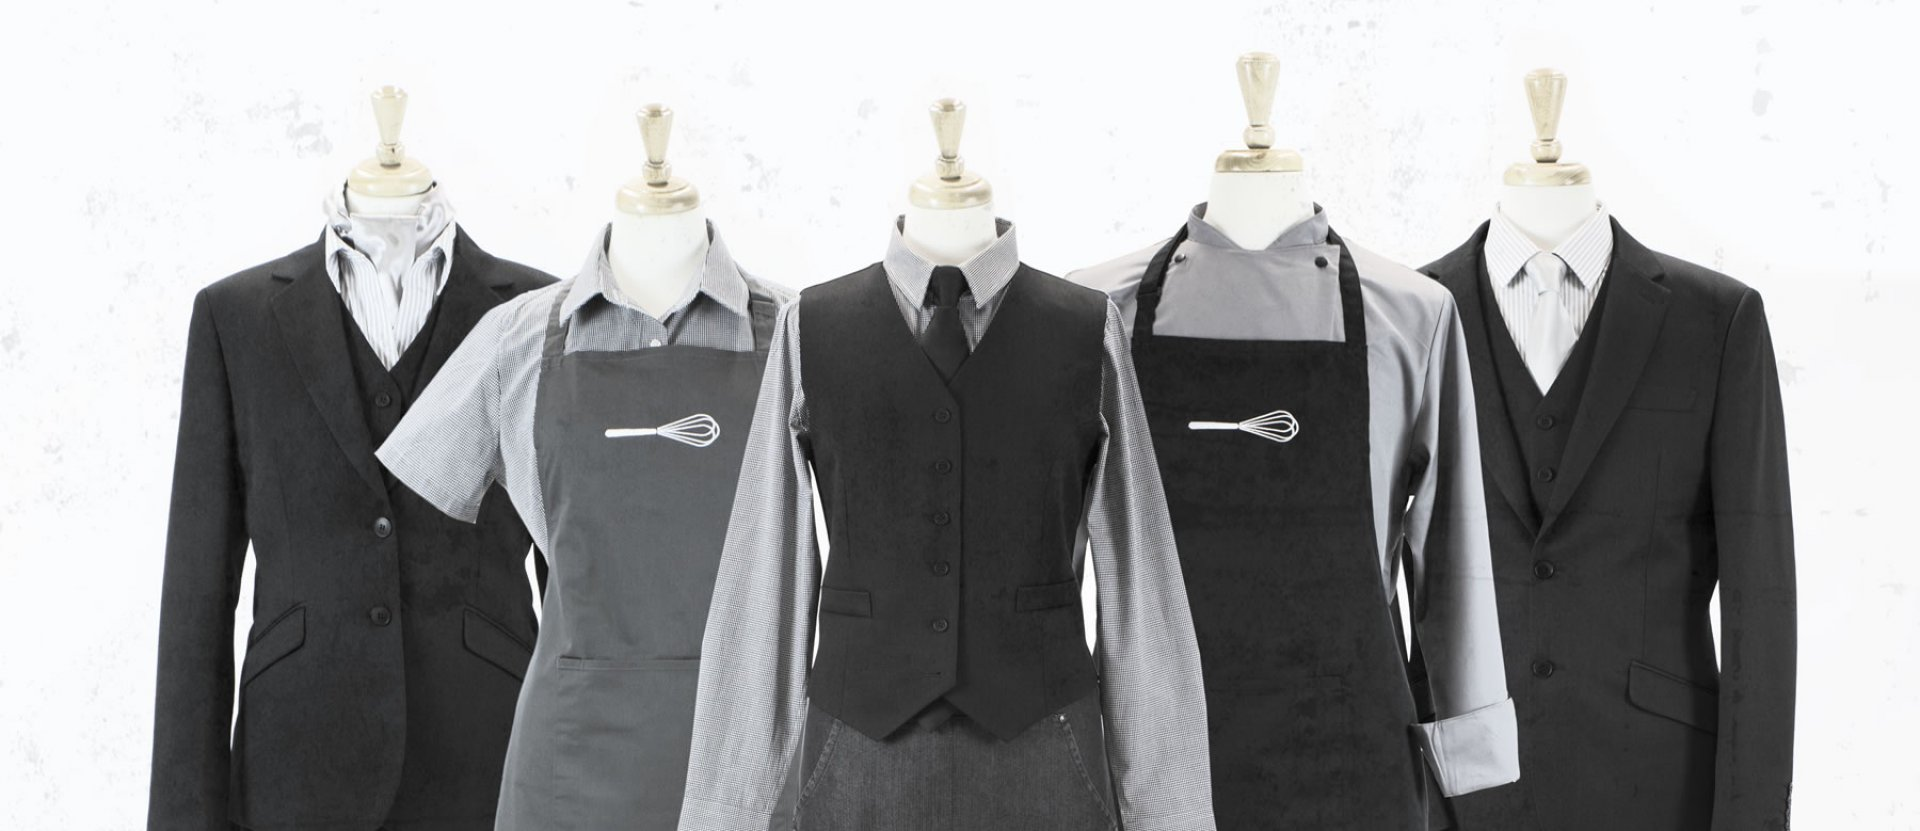 Contract Catering - Aprons, Shirts, Blouses, Jackets, Waistcoats Uniforms Banner